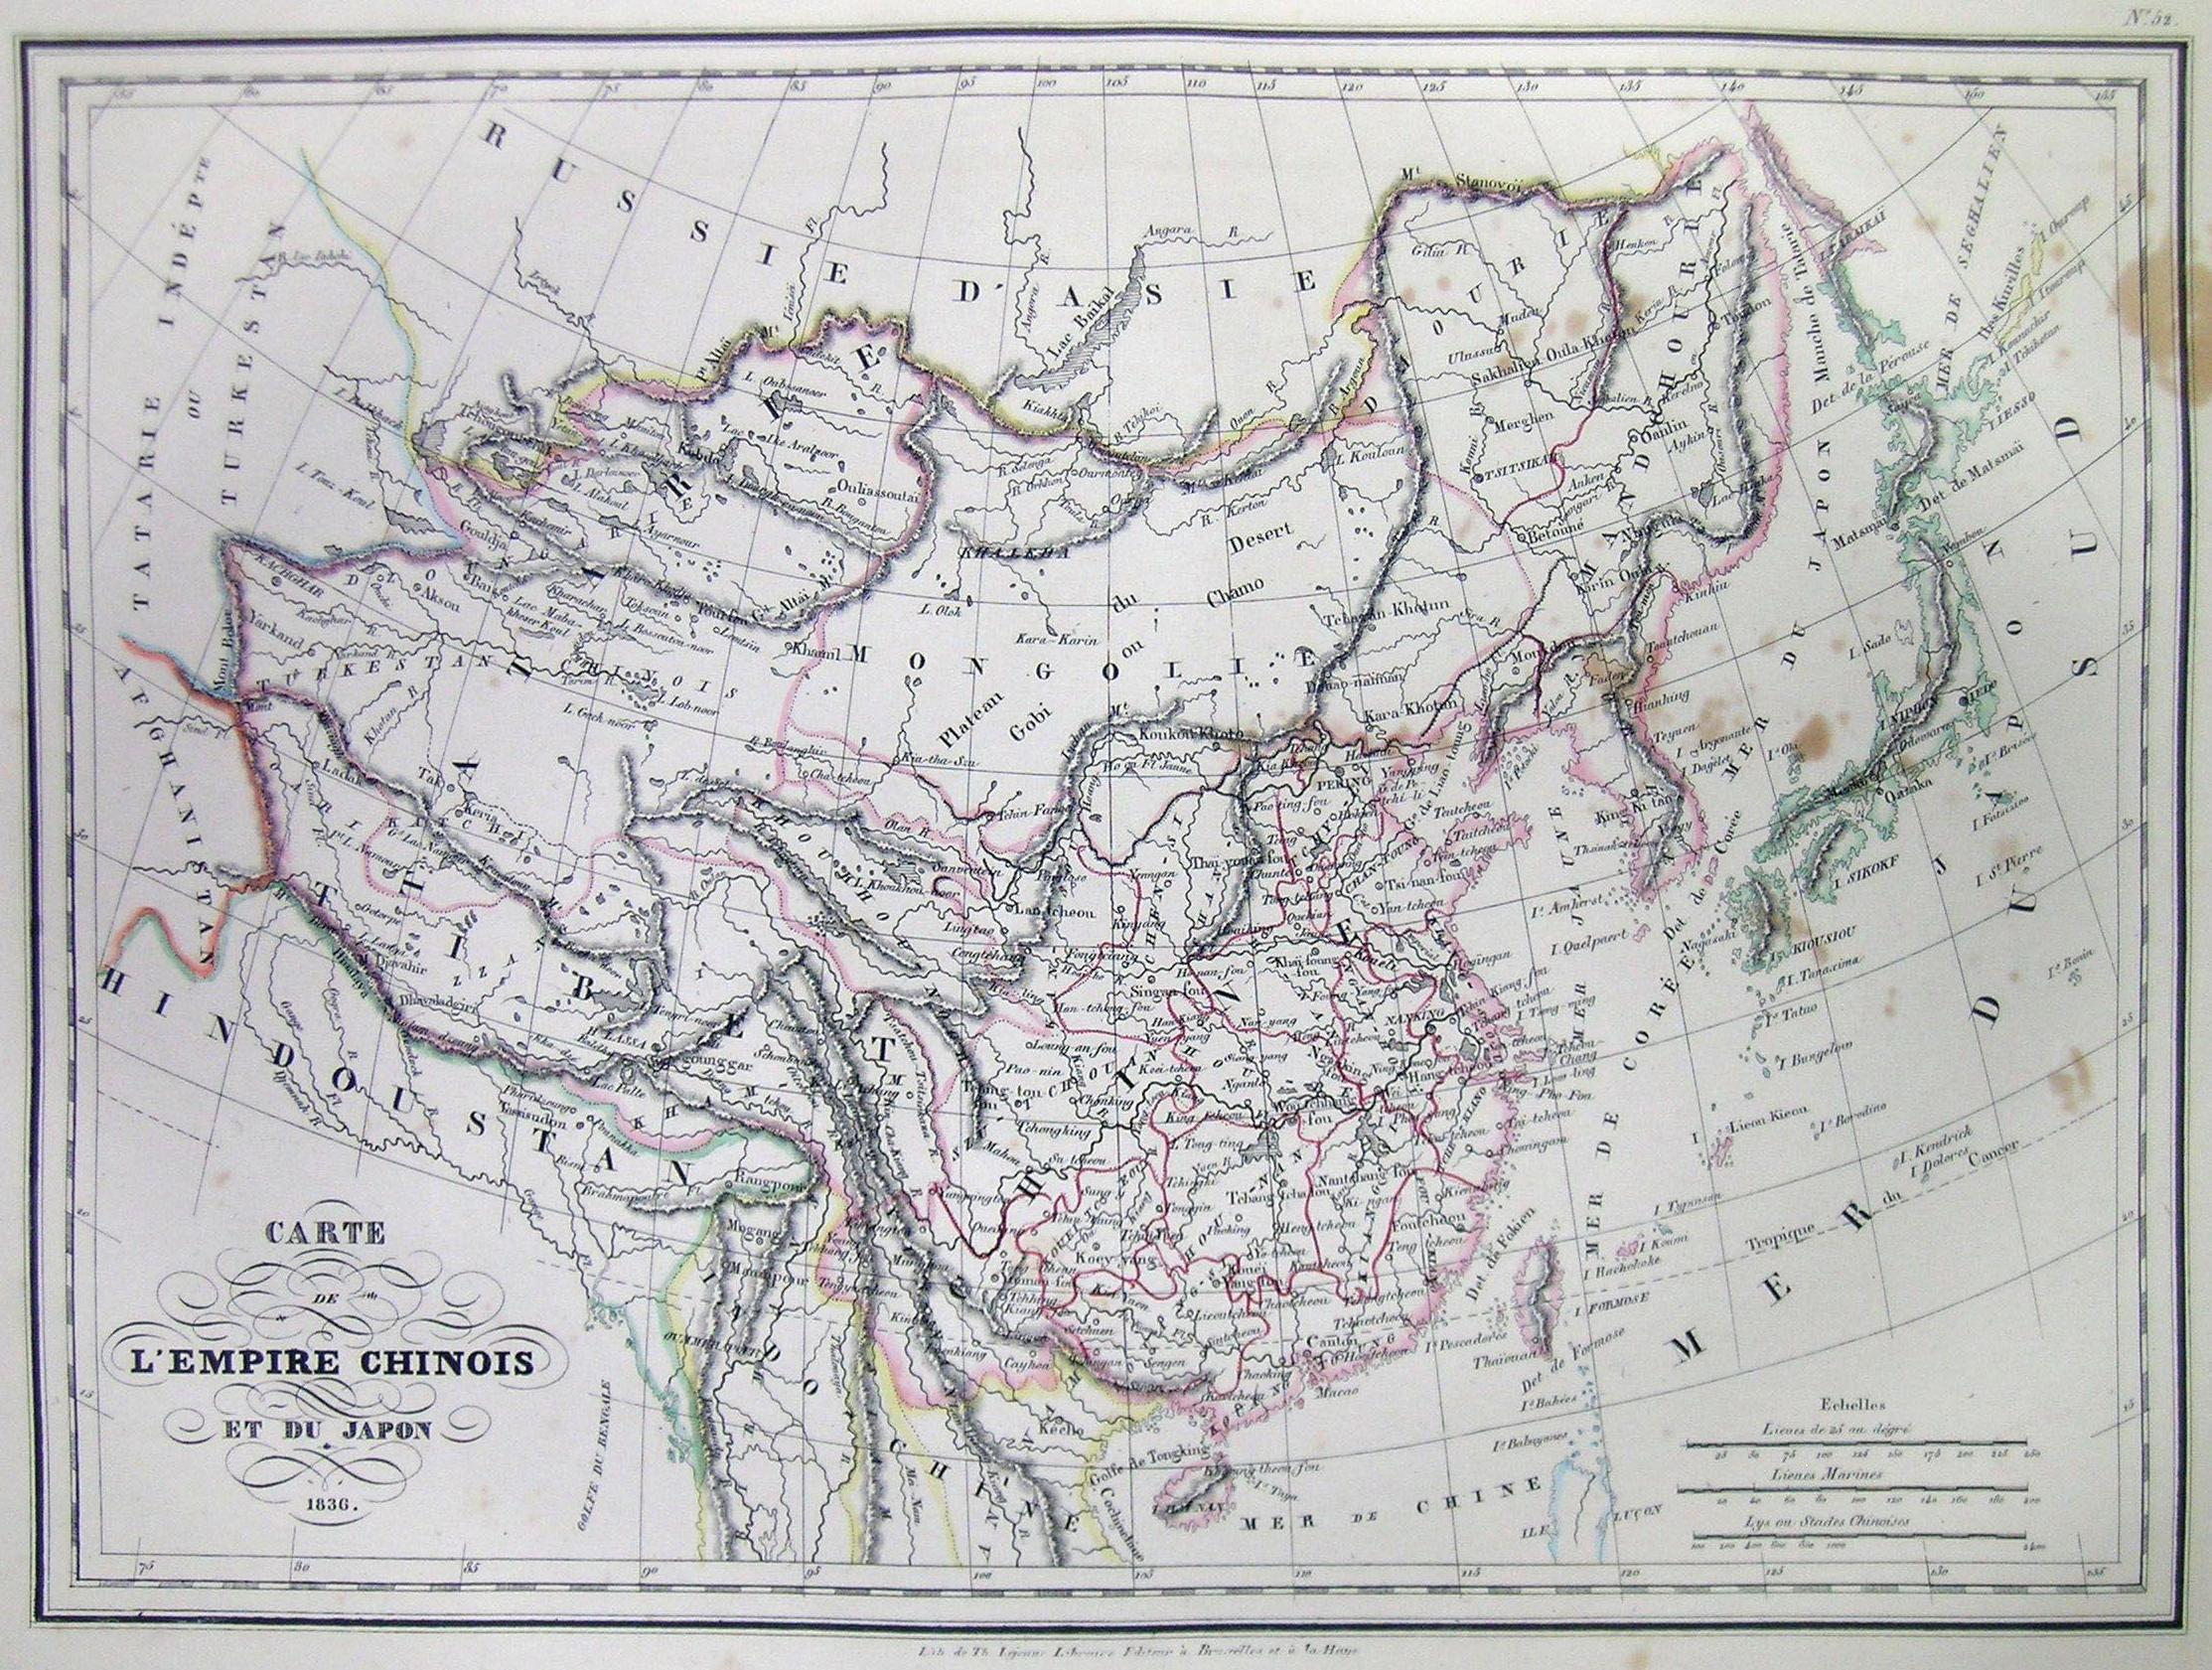 1836, printed in 1837 Carte L'Empire Chinois et du Japon